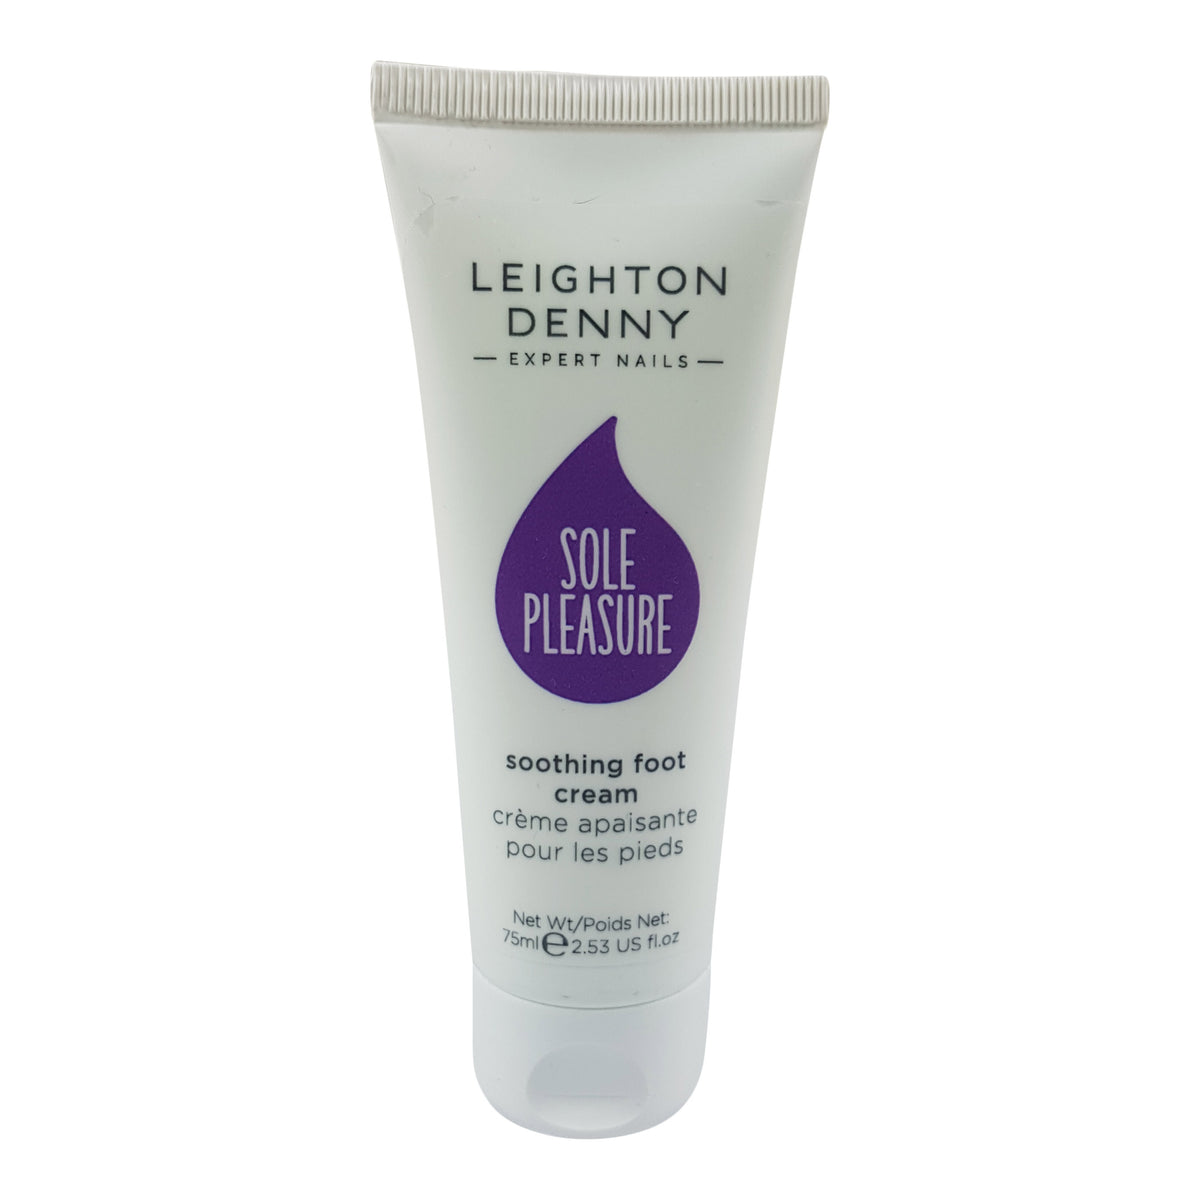 Leighton Denny Sole Pleasure Foot Cream 75ml